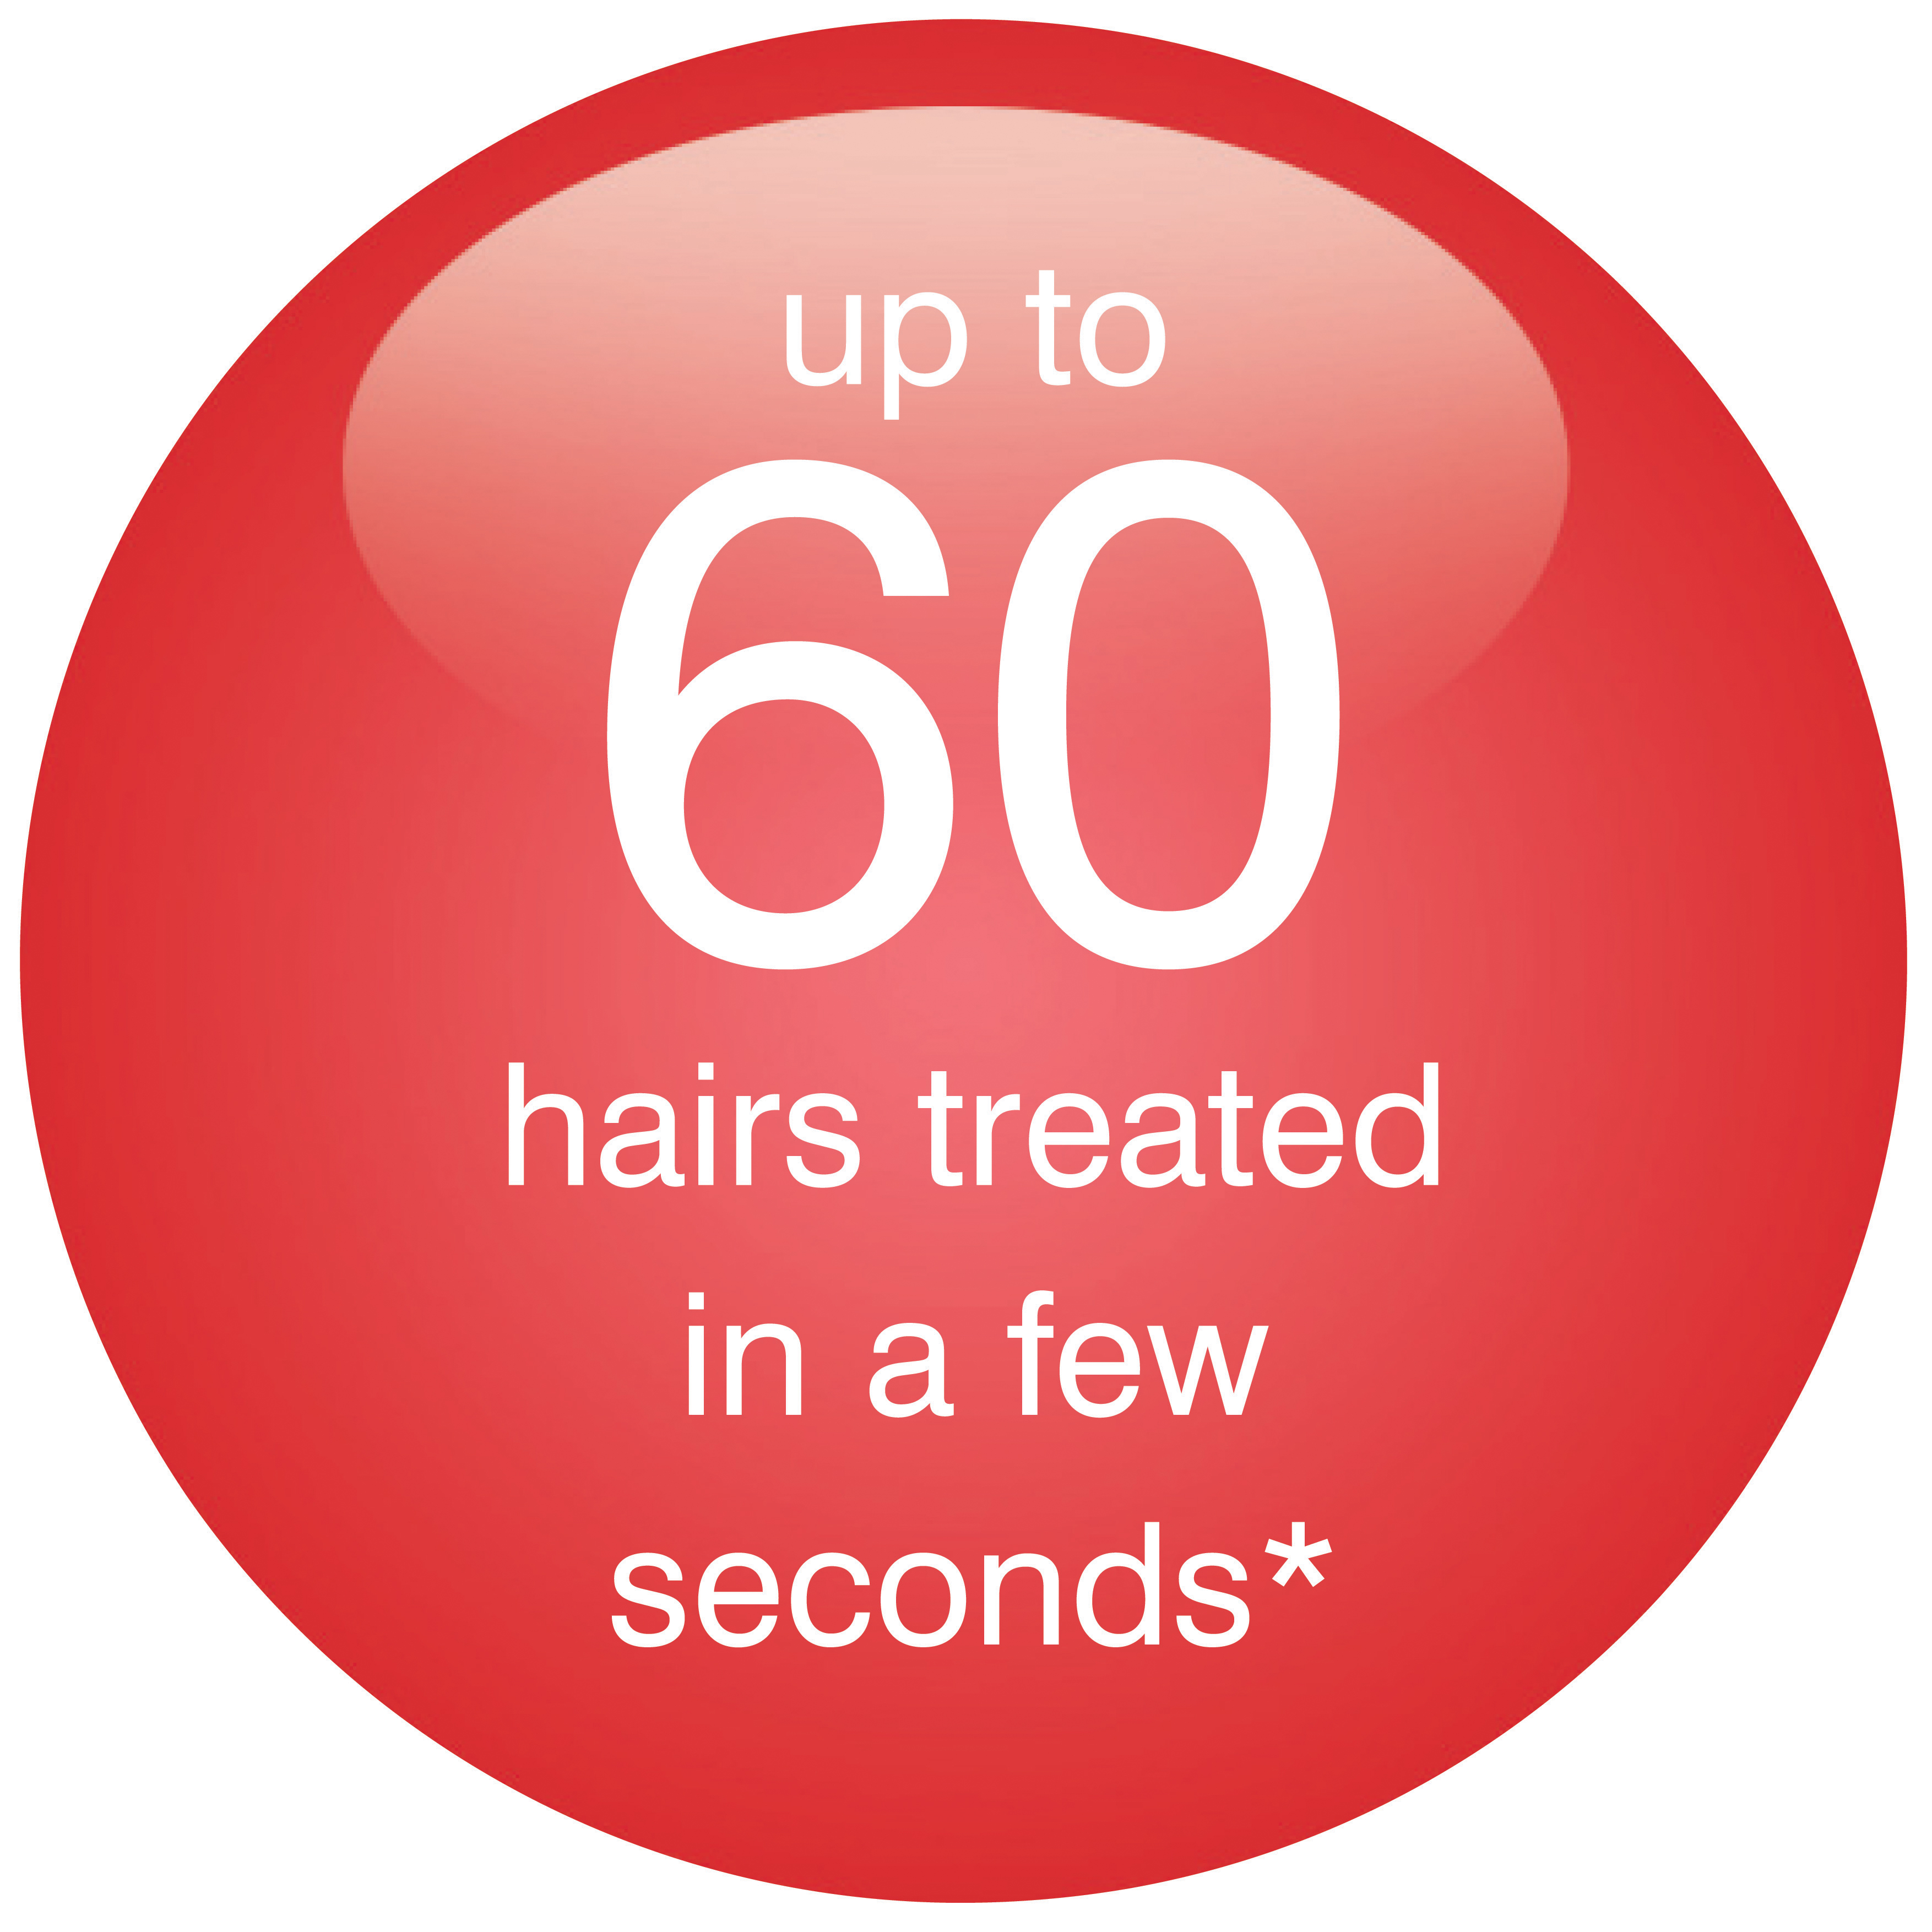 Up to 60 hairs treated per second